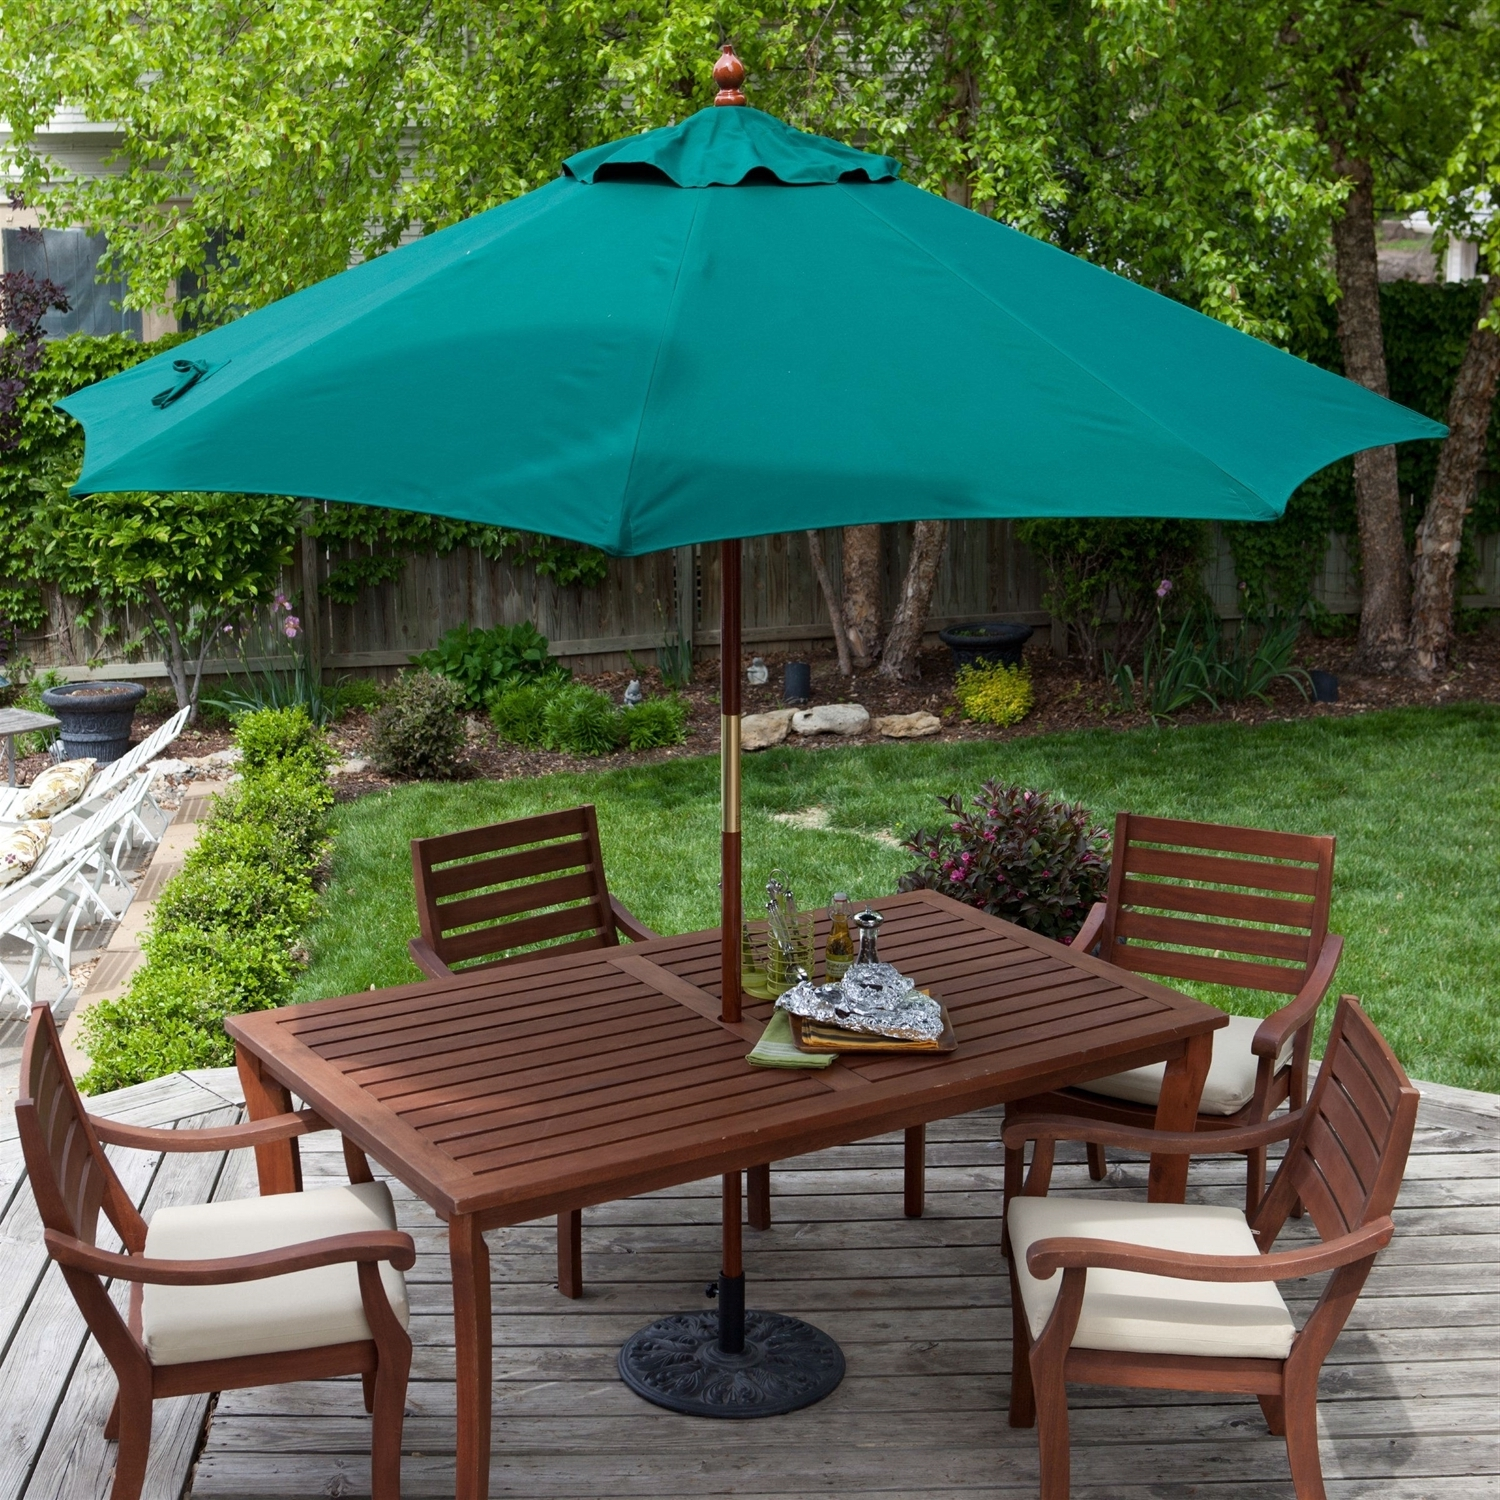 Patio Furniture Sets With Umbrellas Throughout Fashionable Table: Outstanding Lowes Patio Table For Amusing Outdoor Furniture (View 7 of 20)